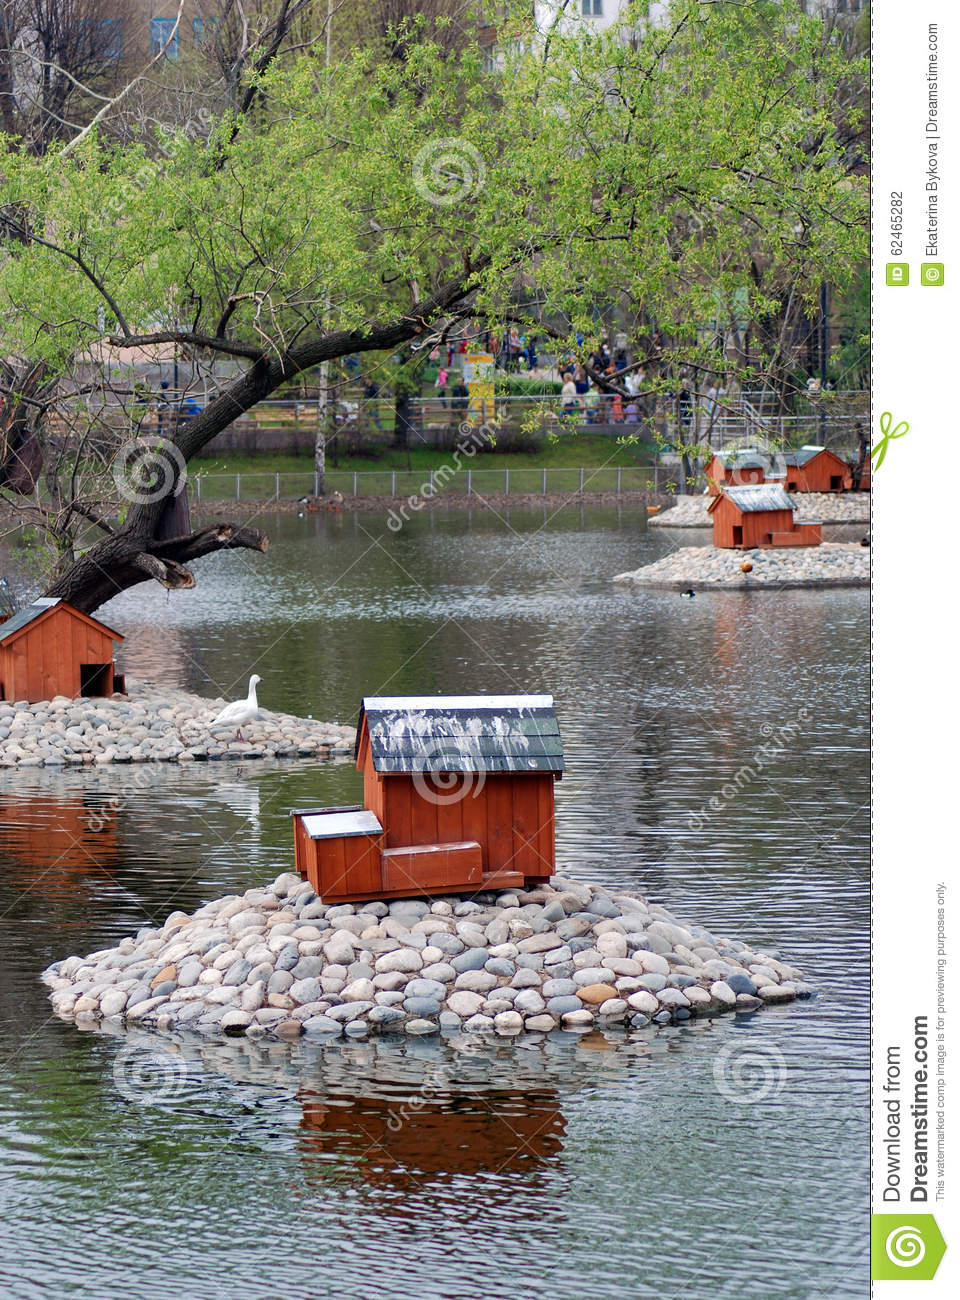 Russia Birdhouse In The Park At Sparrow Hills In Moscow